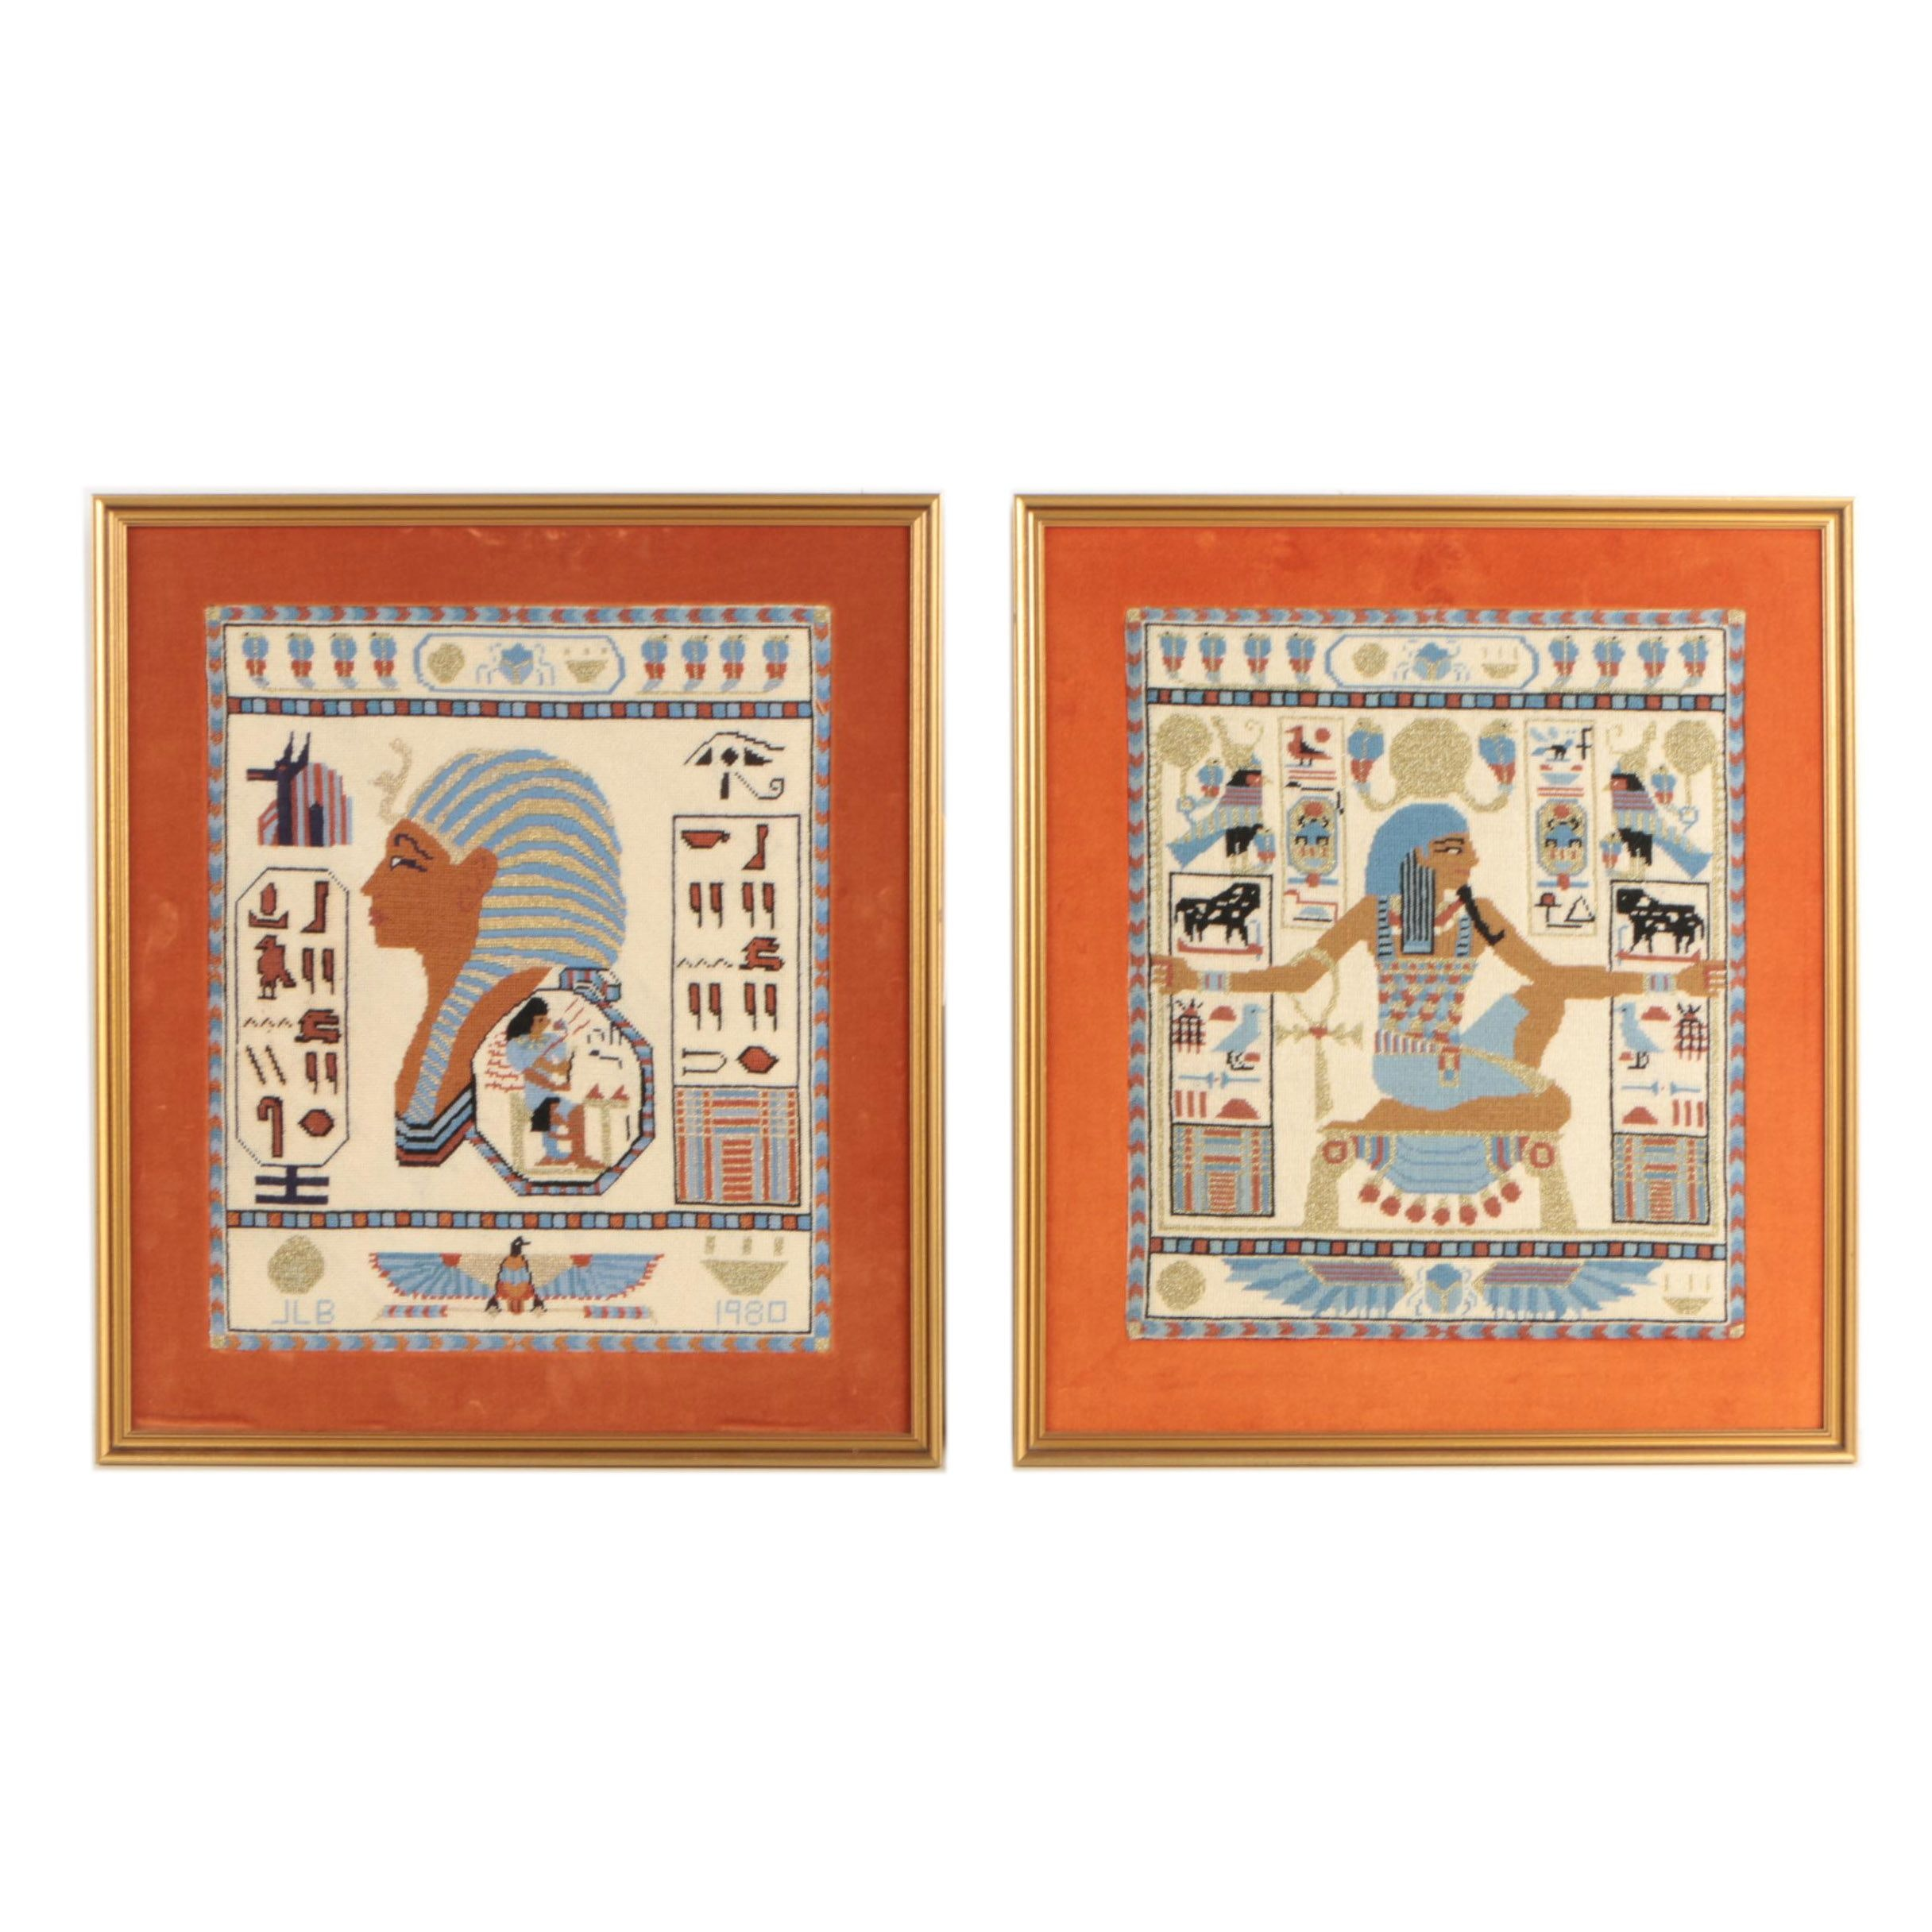 Pair of 1980 Egyptian Themed Cross Stitches